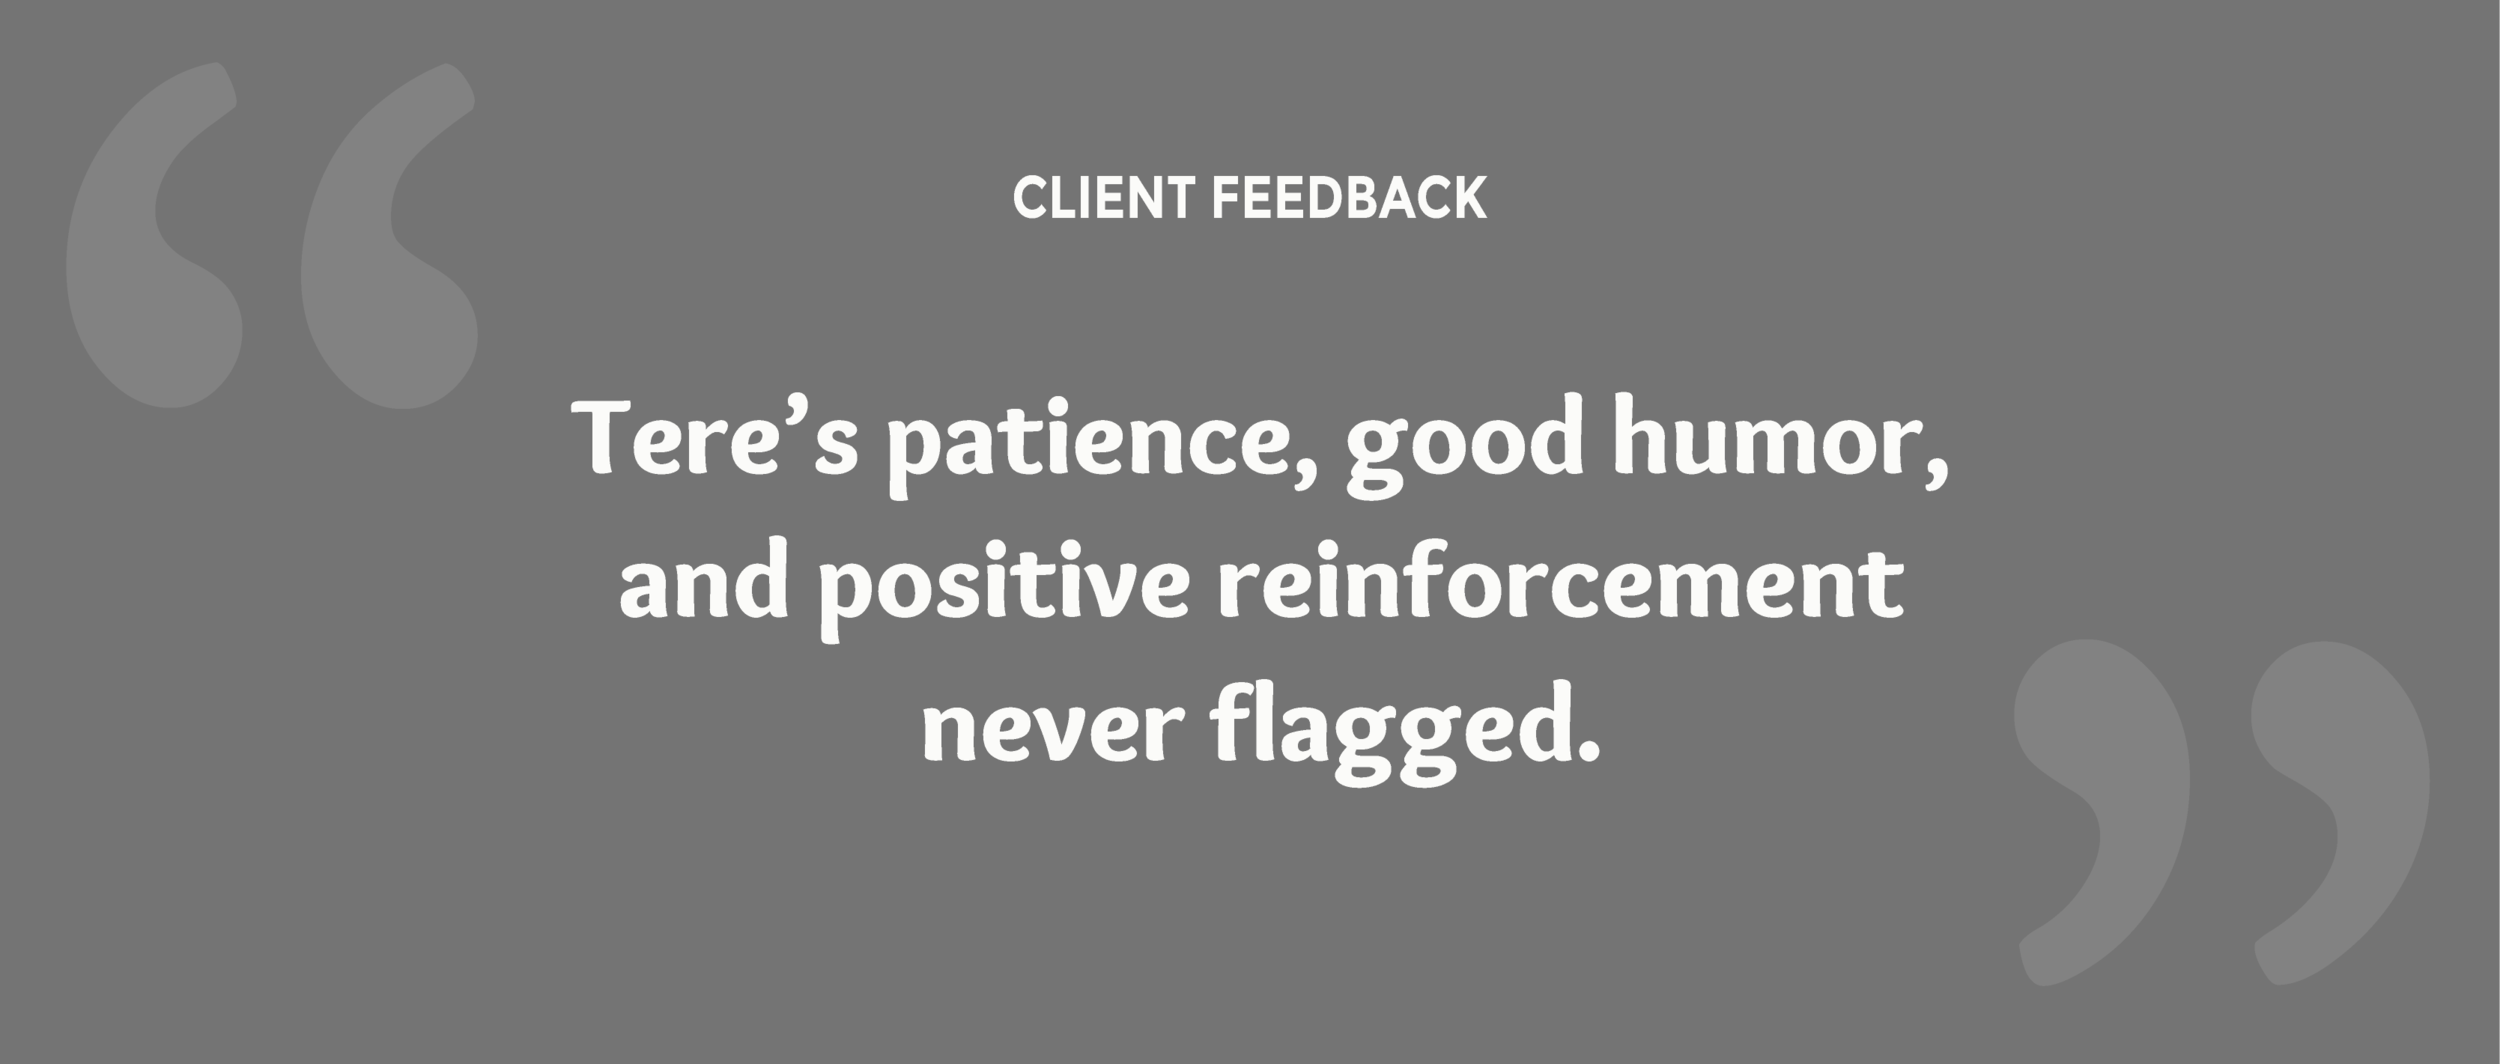 about-client-feedback5.png